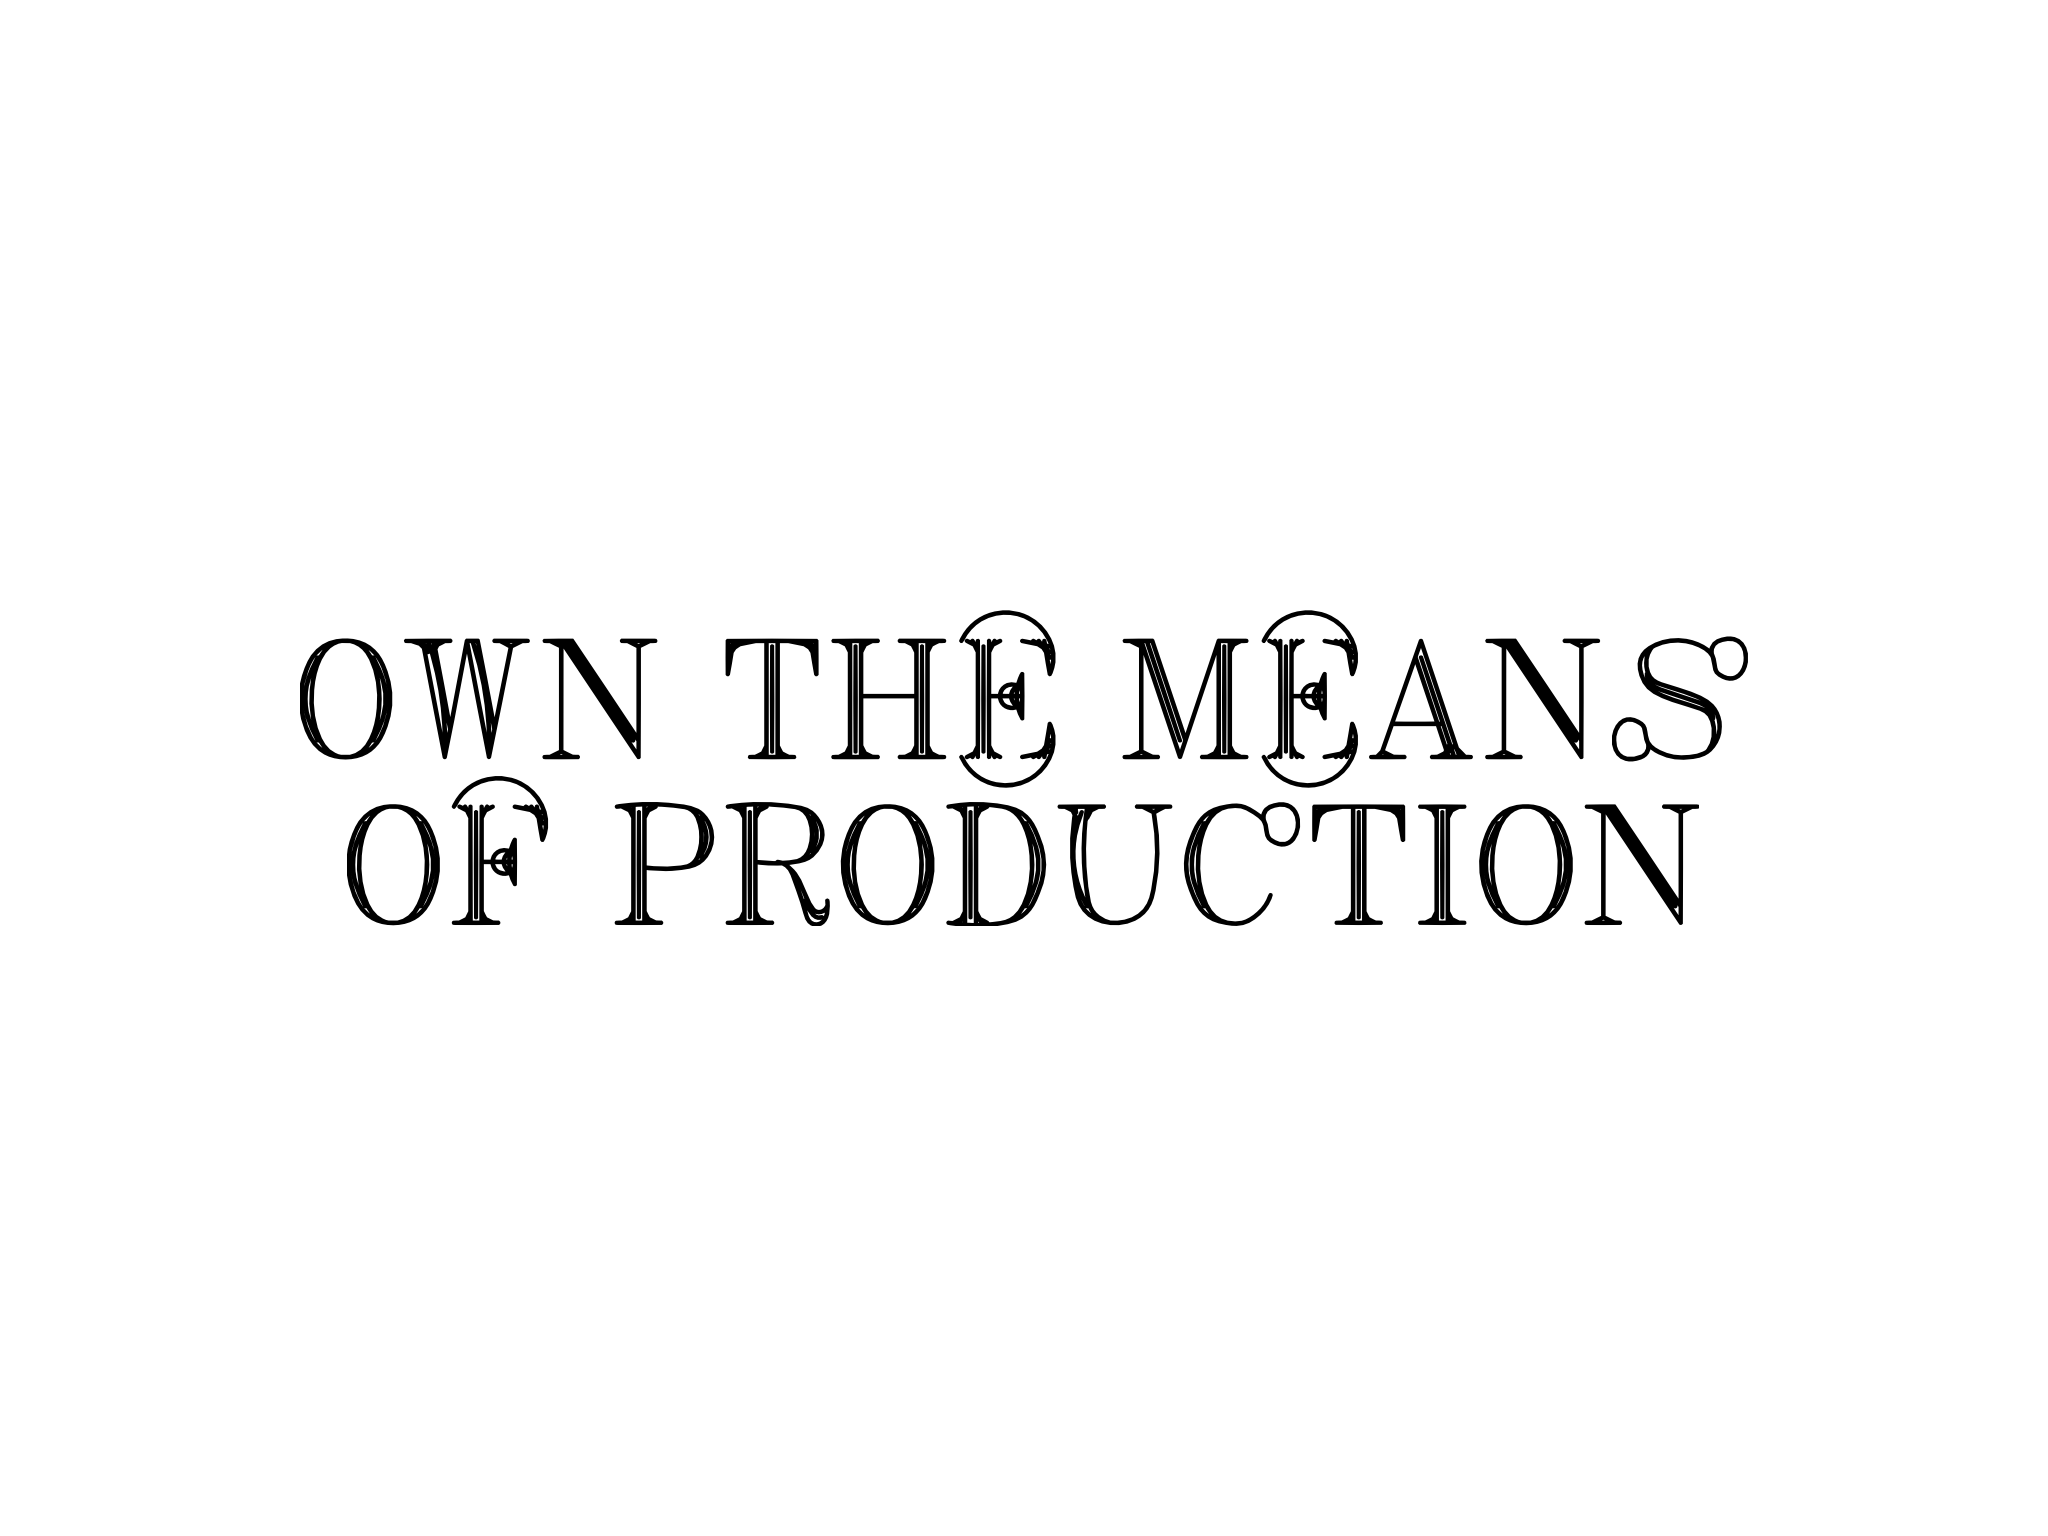 content/images/uploads/txt-own-the-means-of-production.png